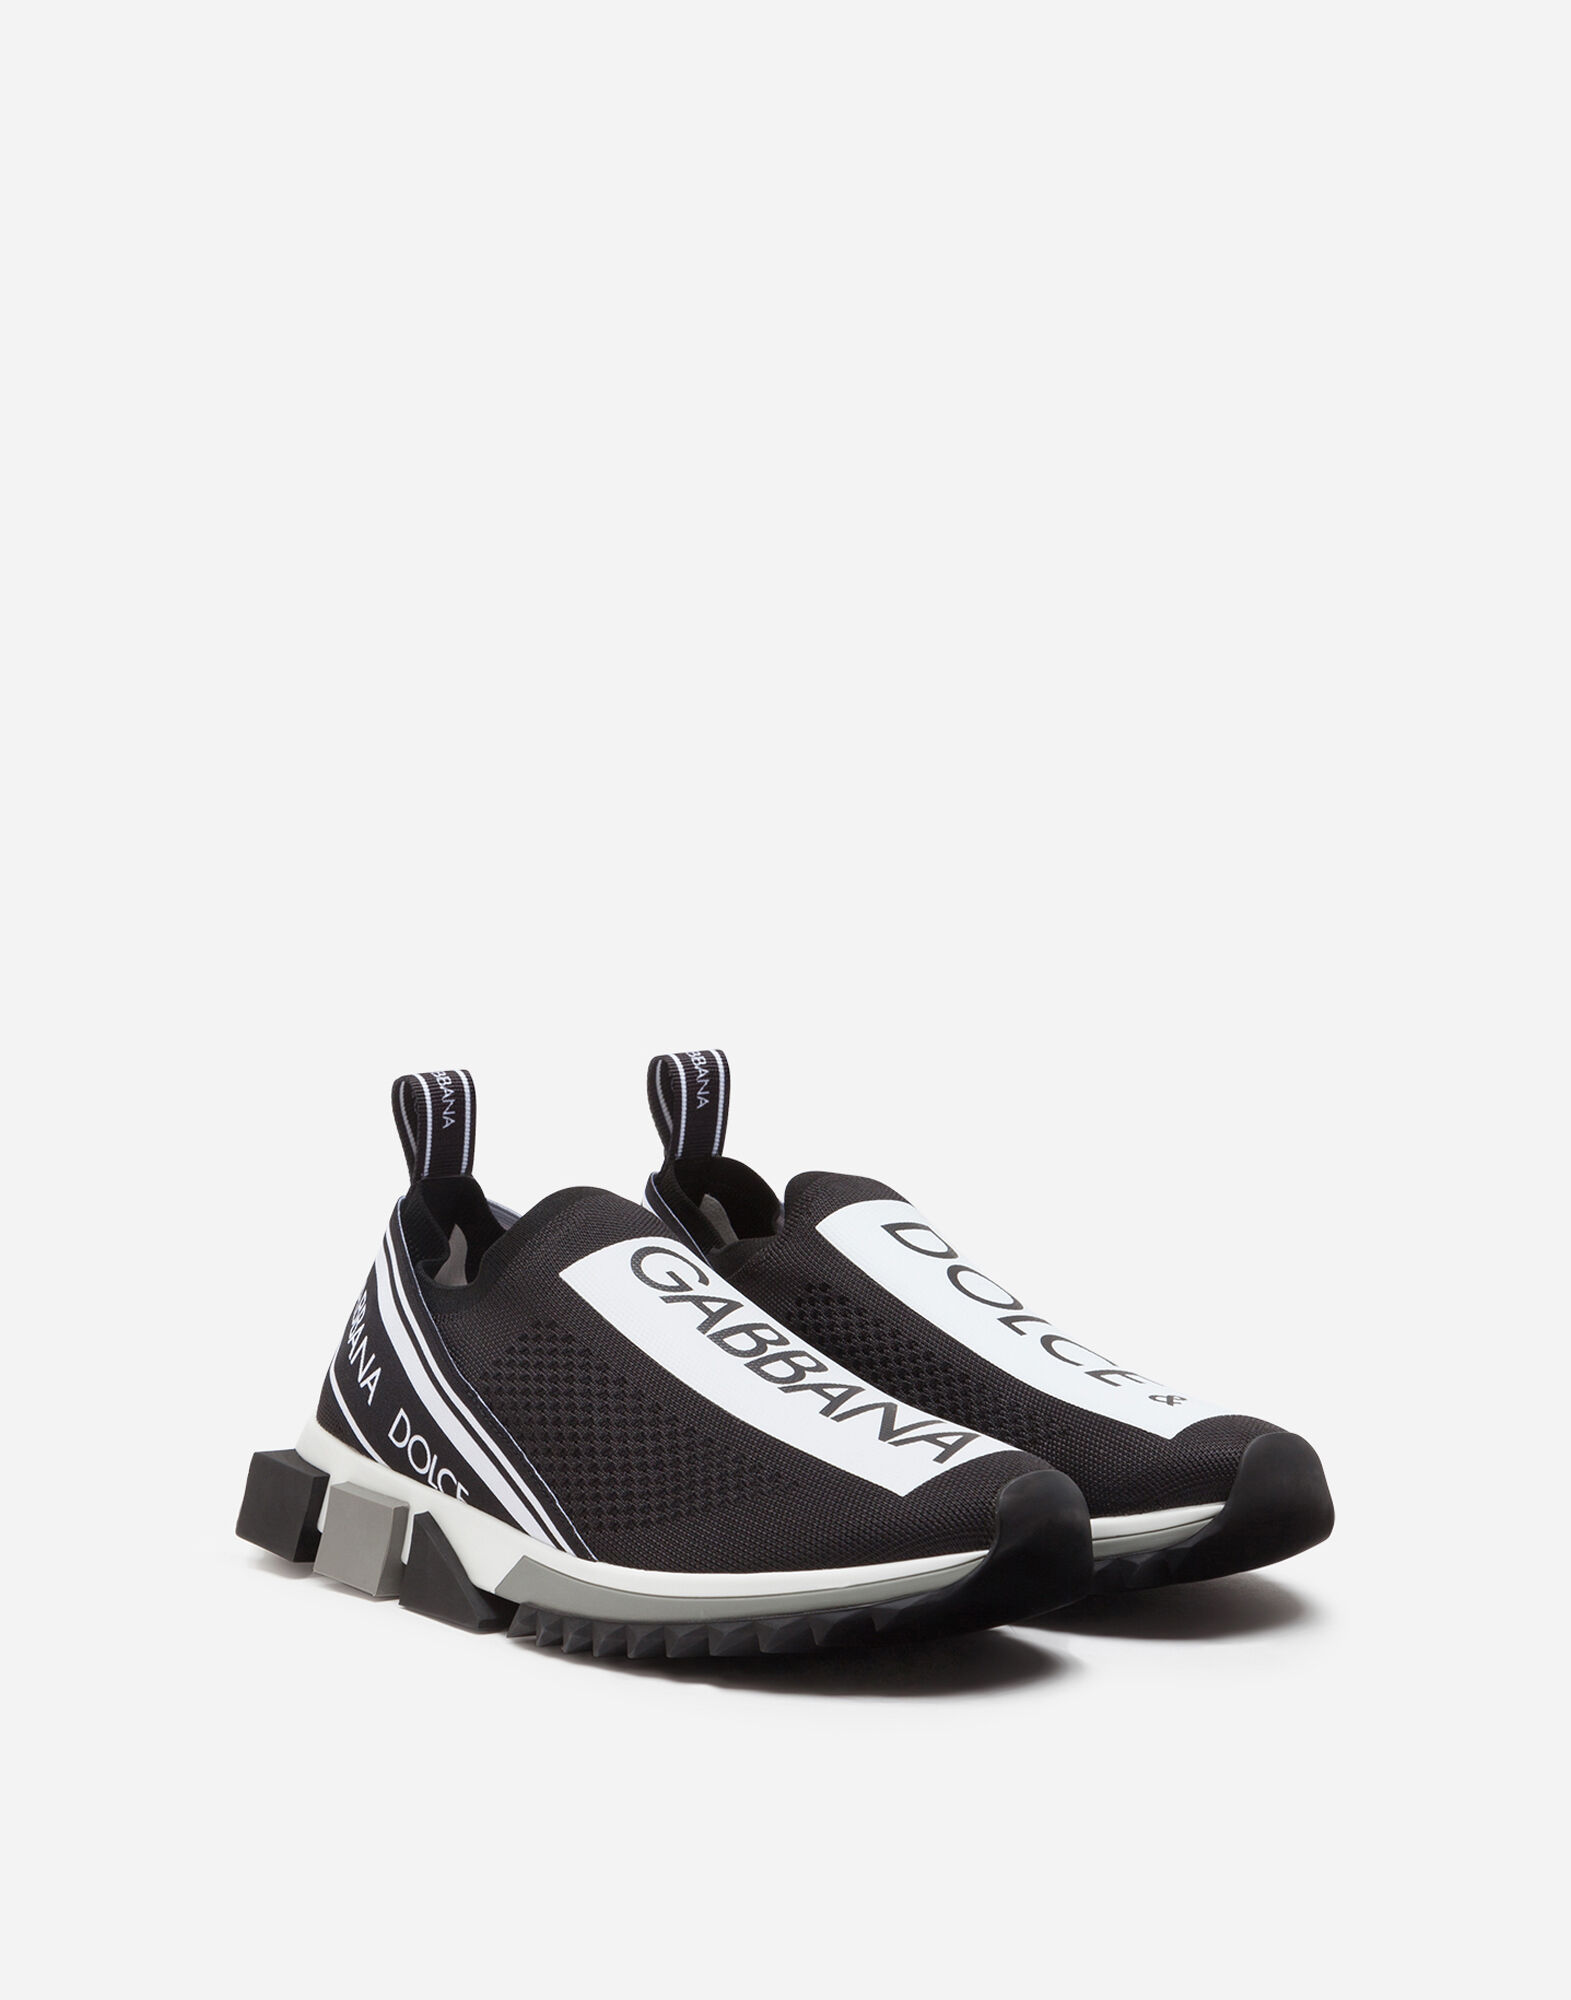 Sorrento Sneakers - Men's Shoes | Dolce